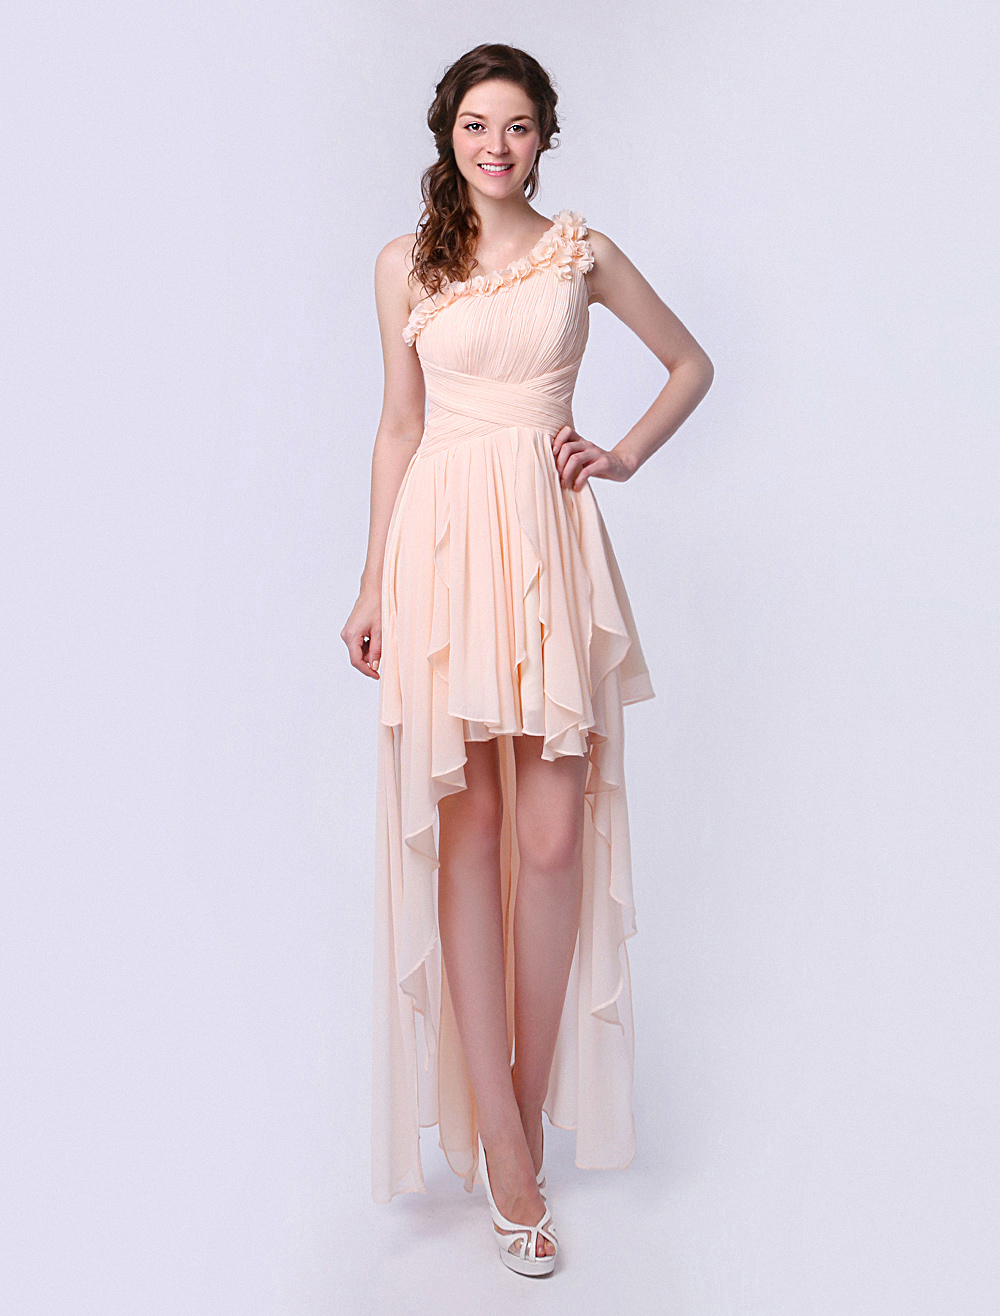 Chiffon Bridesmaid Dress With Ruffled One-Shoulder